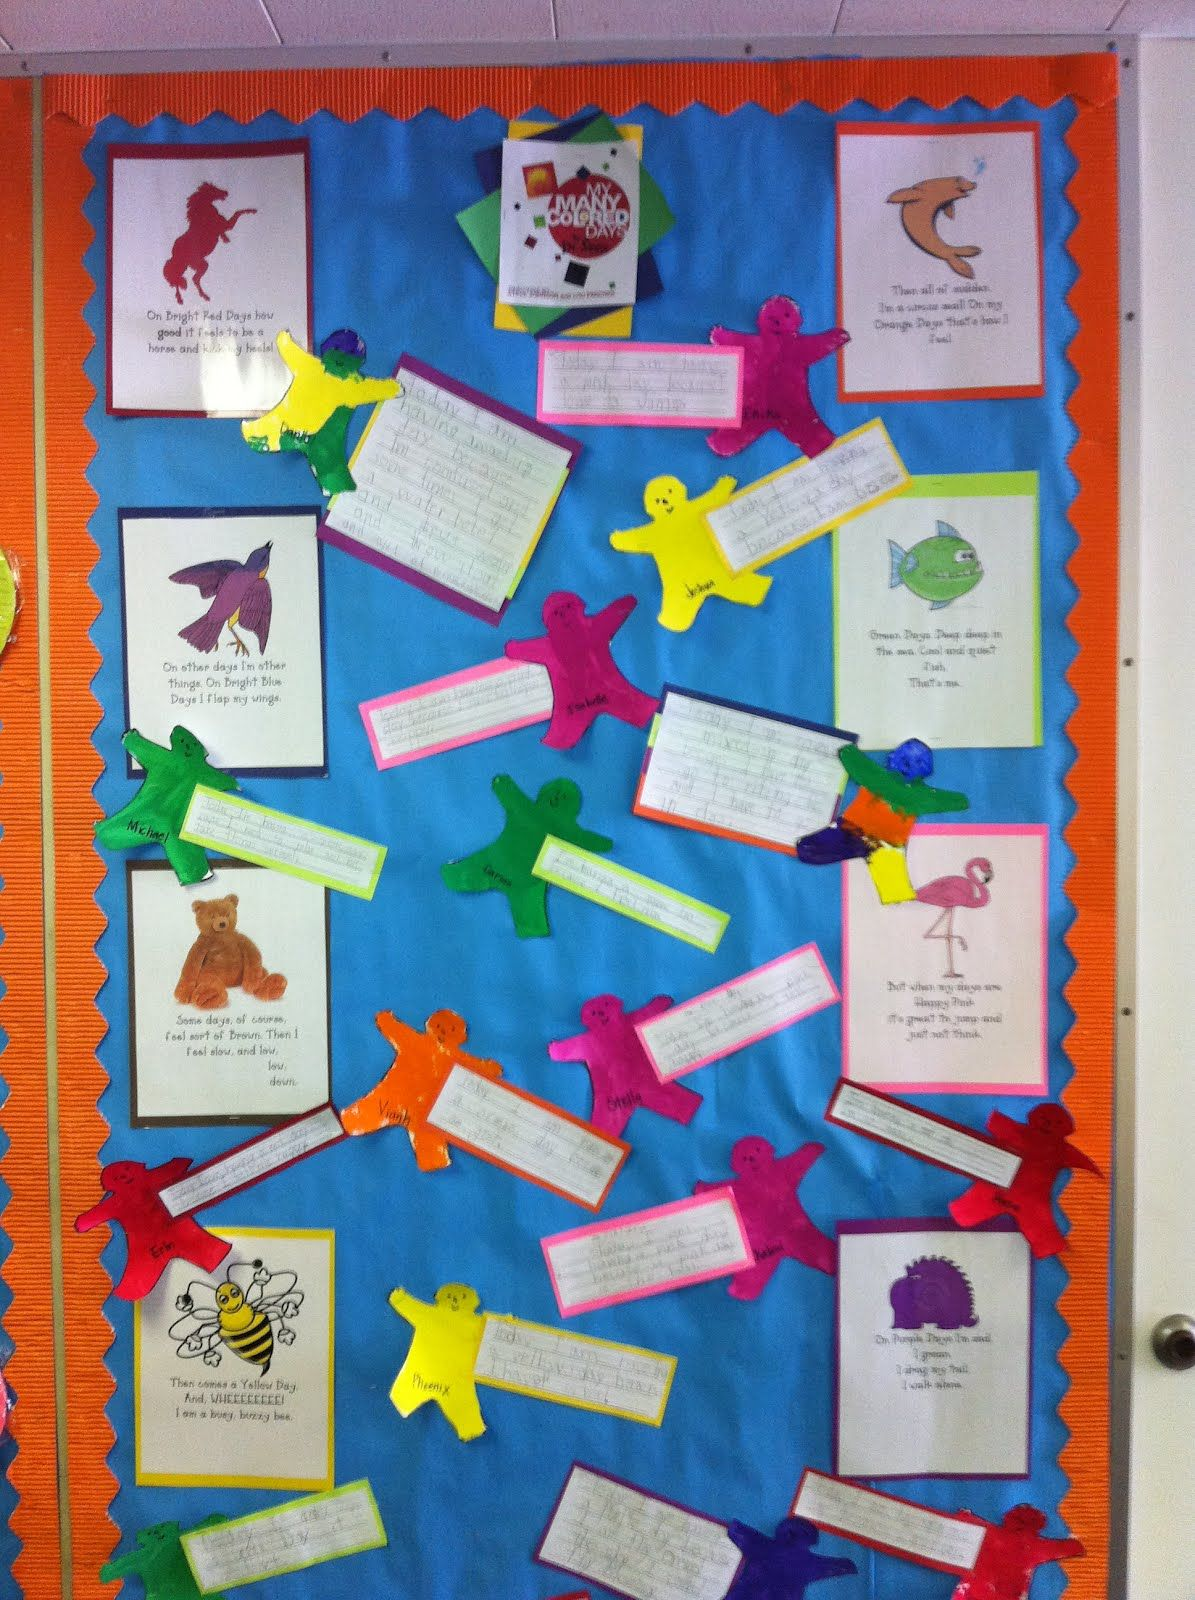 My Many Colored Days Activity For Dr Suess Book